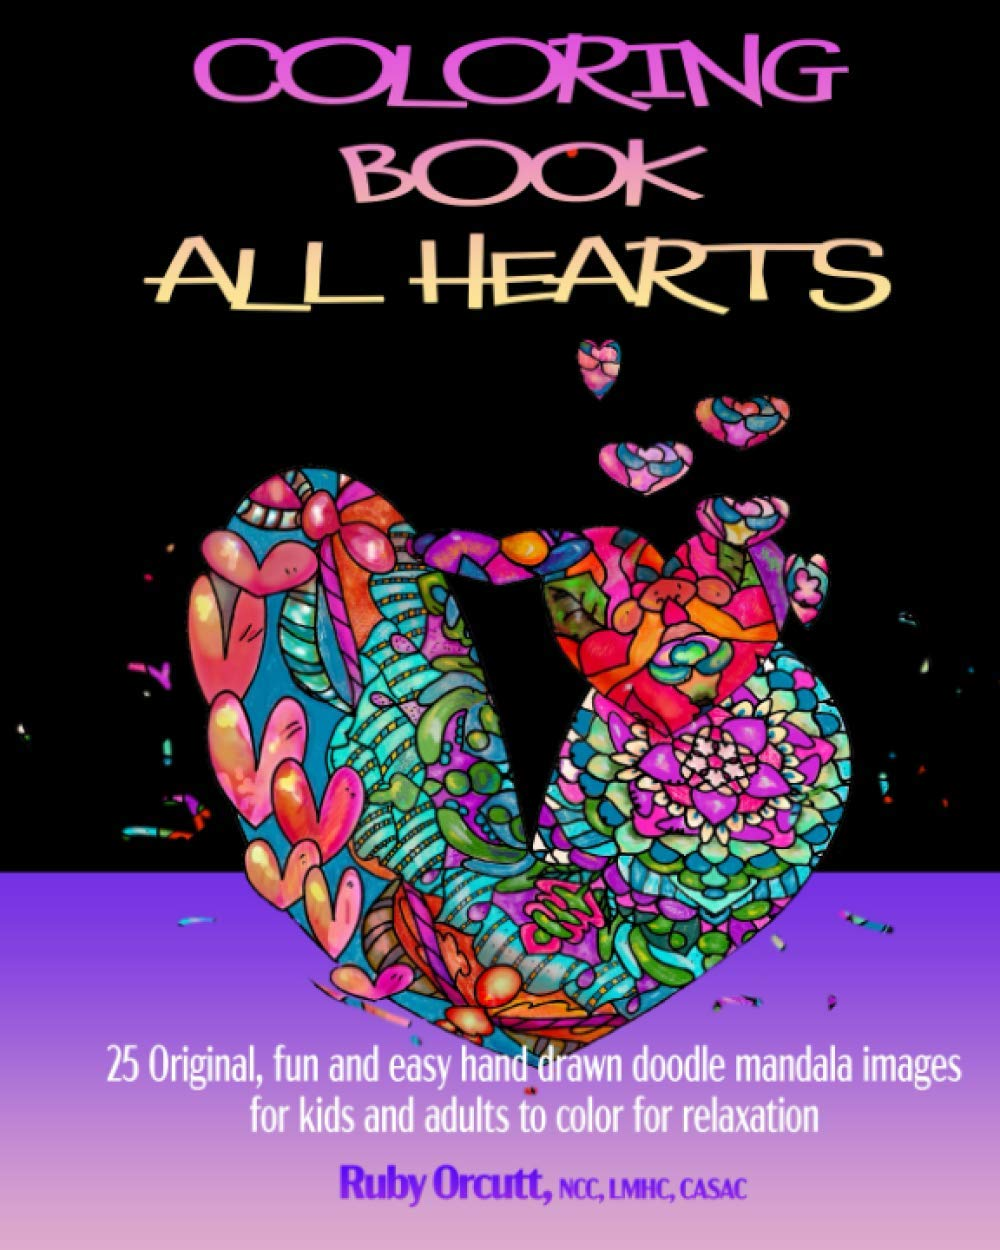 COLORING BOOK ALL HEARTS: 25 ORIGINAL, FUN AND EASY HAND DRAWN DOODLE MANDALA IMAGES FOR KIDS AND ADULTS TO COLOR FOR RELAXATION (The Uplift Spirit series)